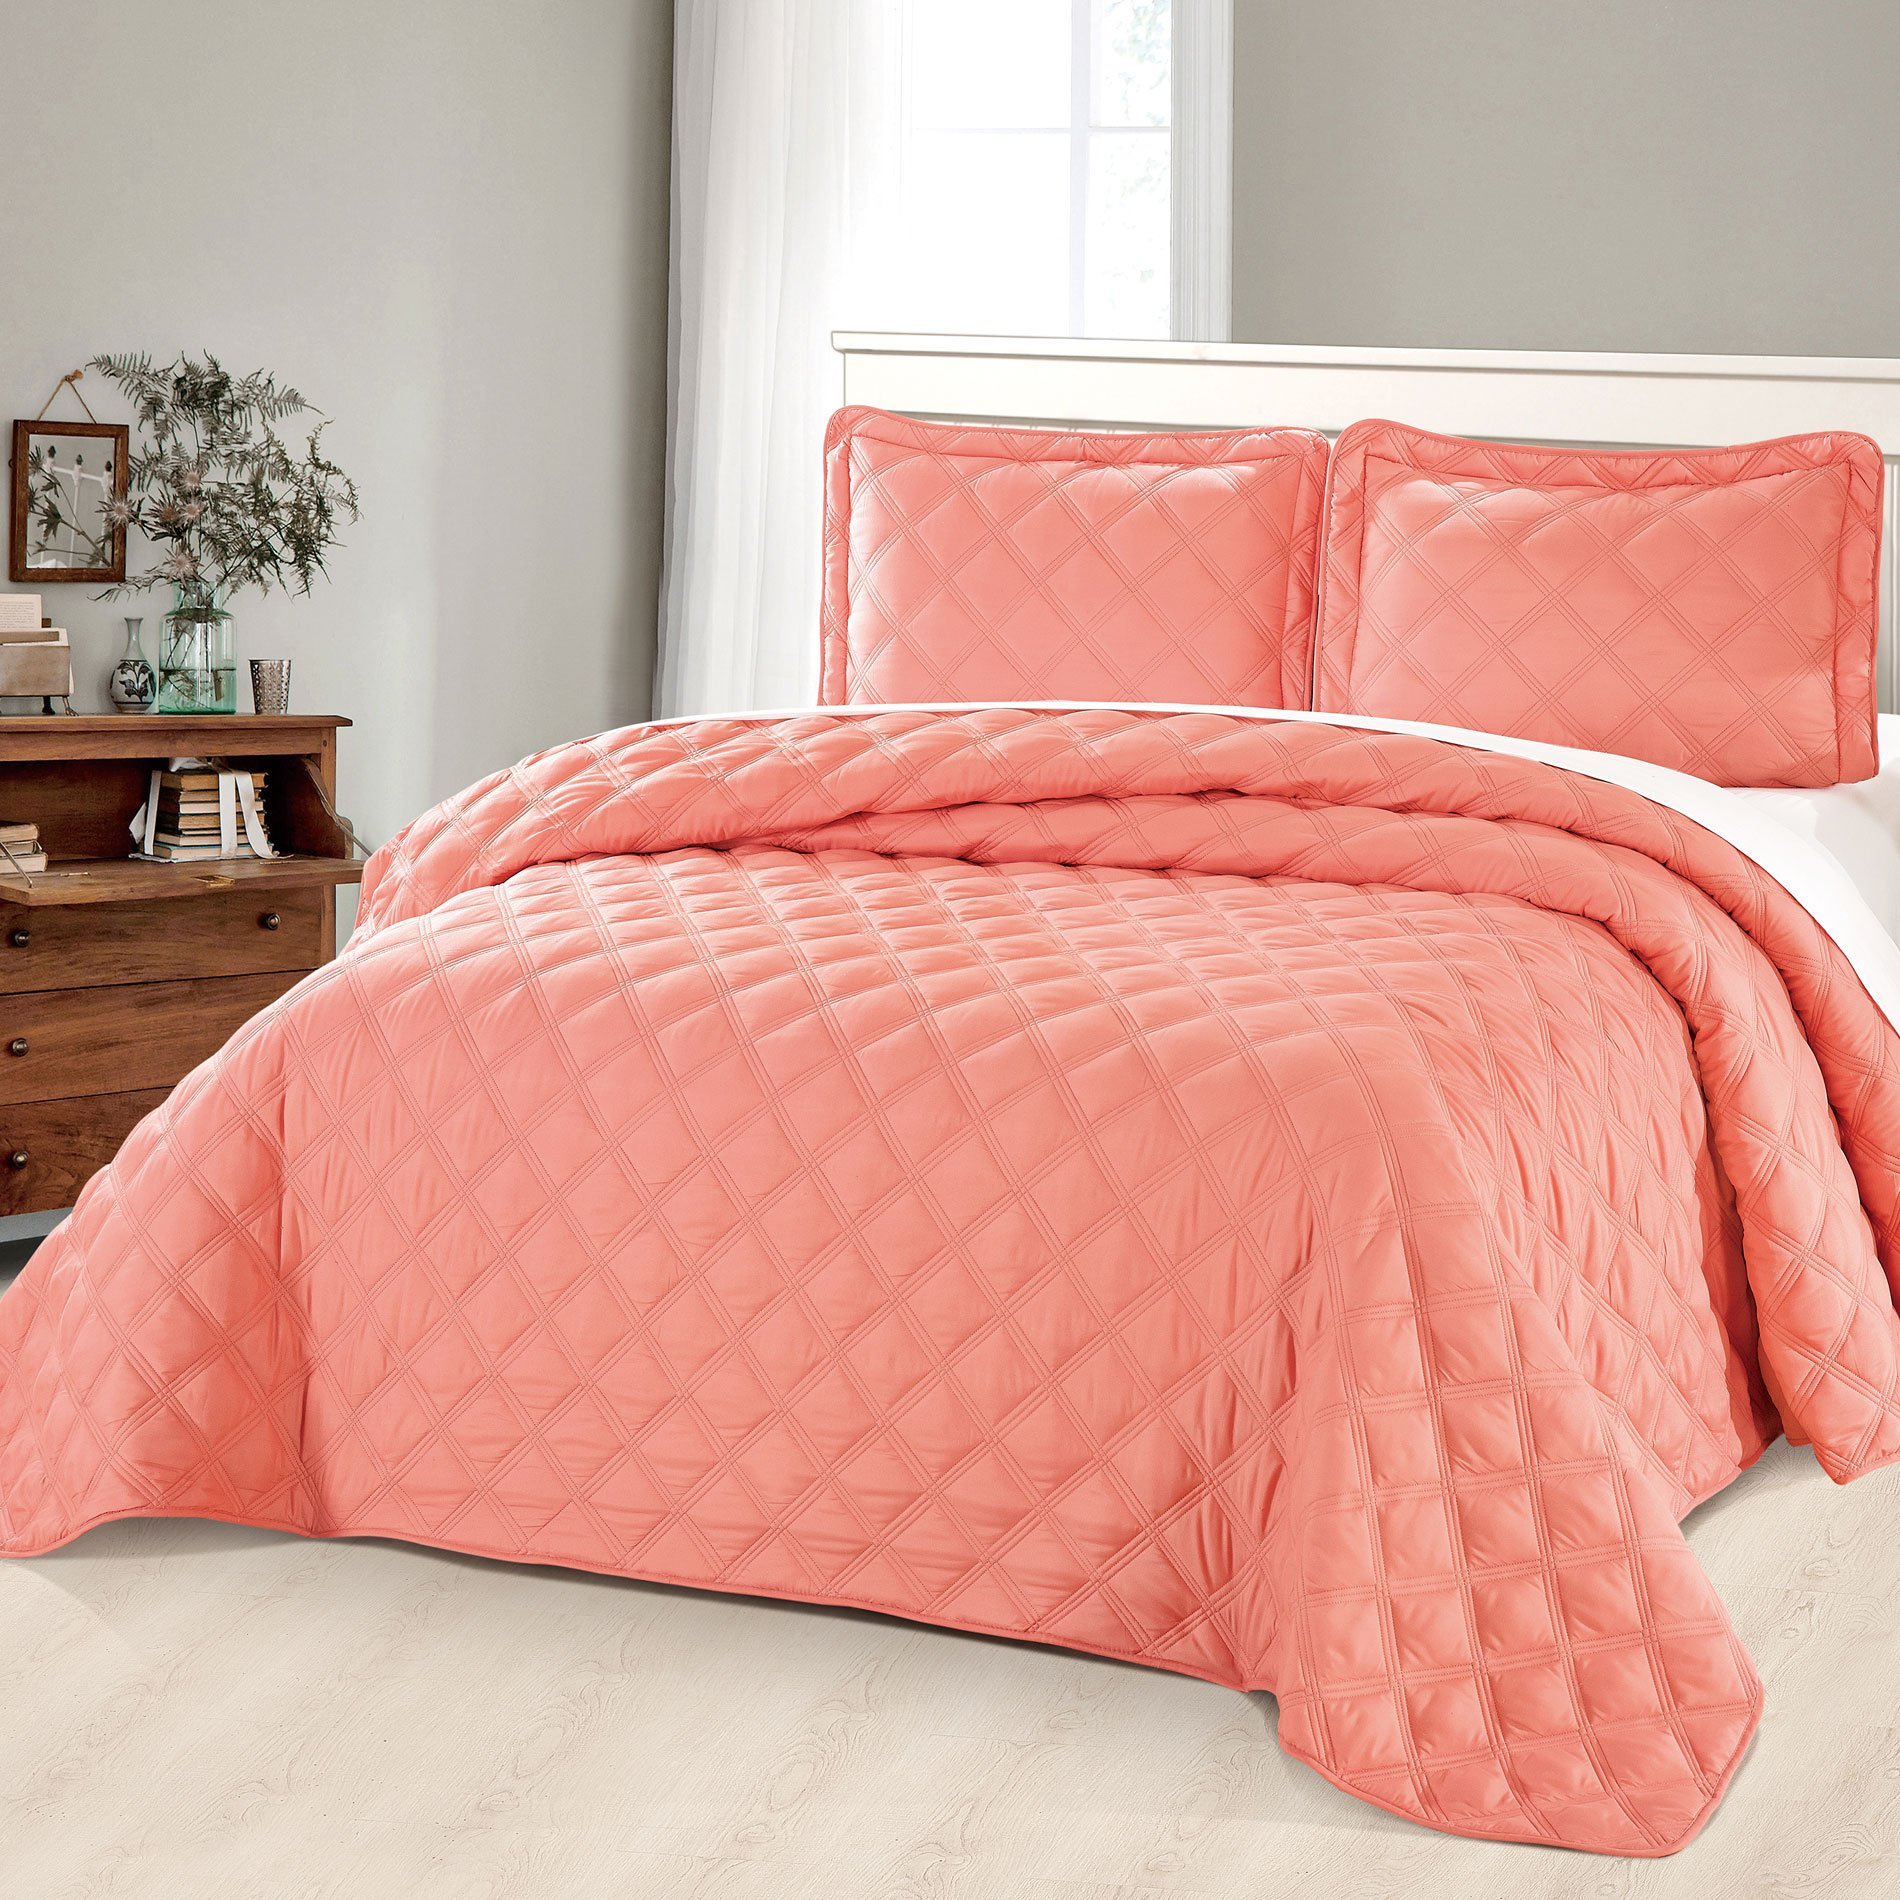 Home Soft Things Serenta Charleston Down Alternative Quilted Bed Spread, Coral, Twin 80'' x 106''